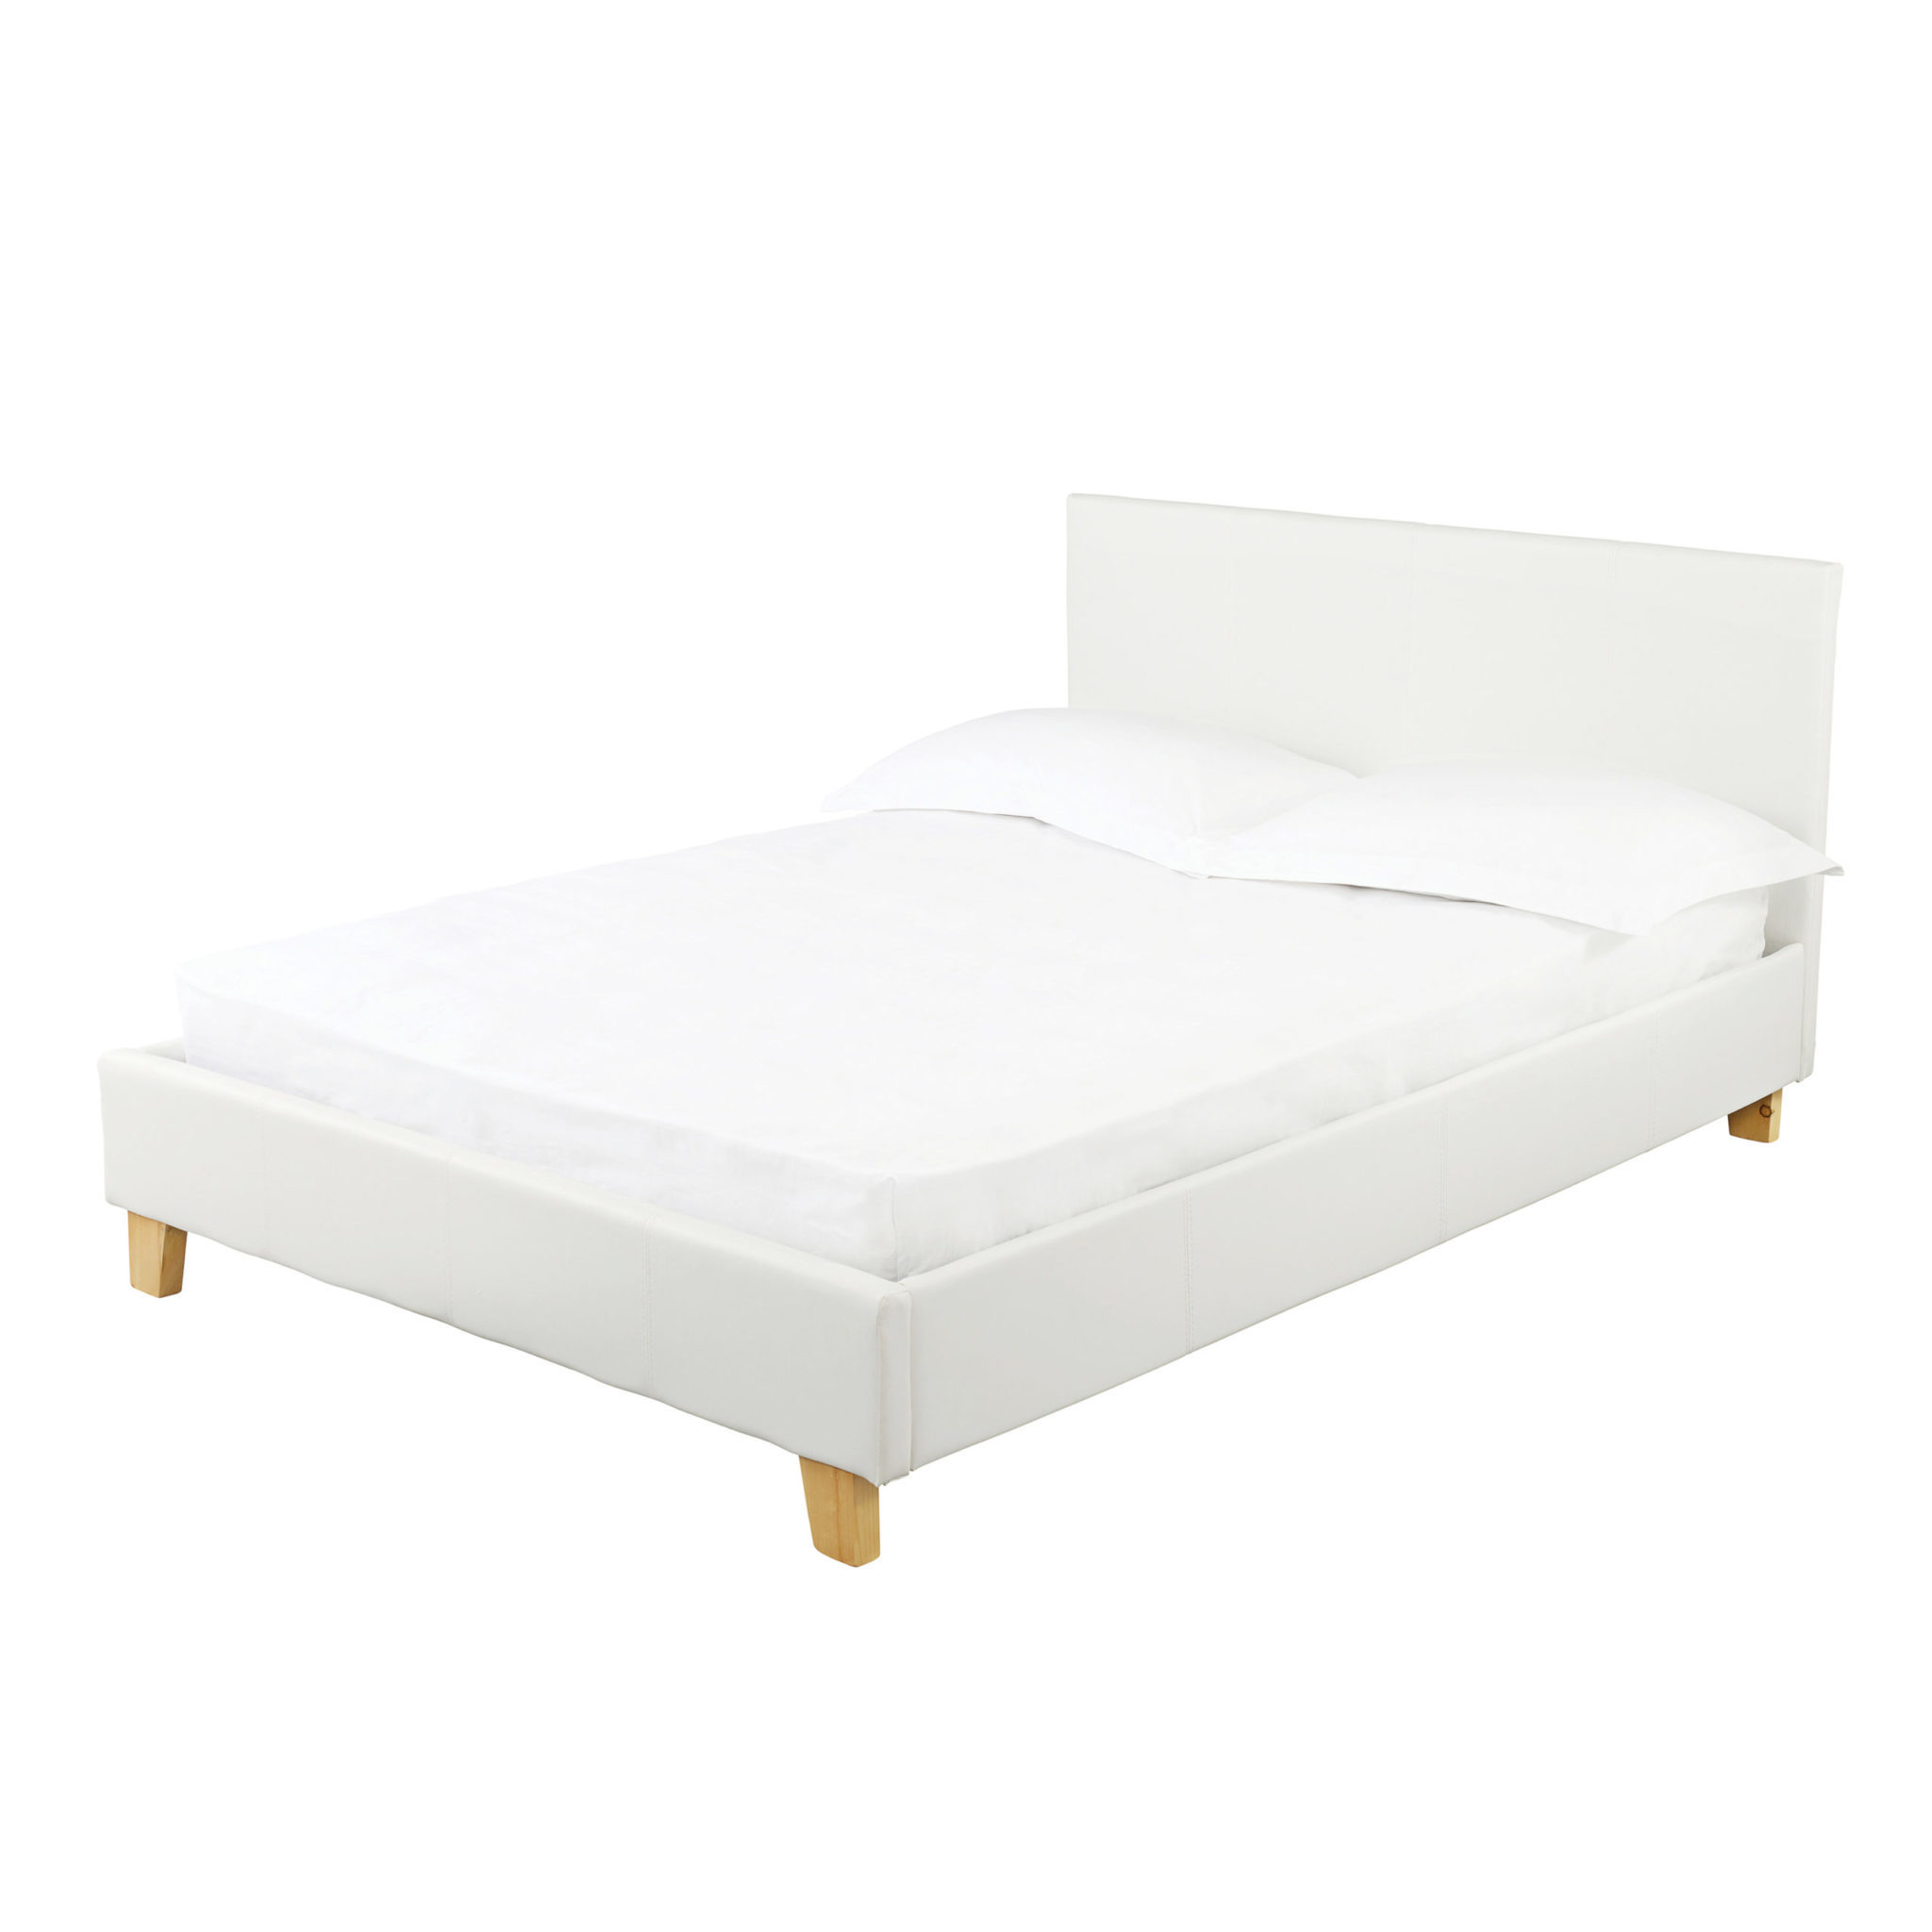 Pusrin 4.6 Double Bed White